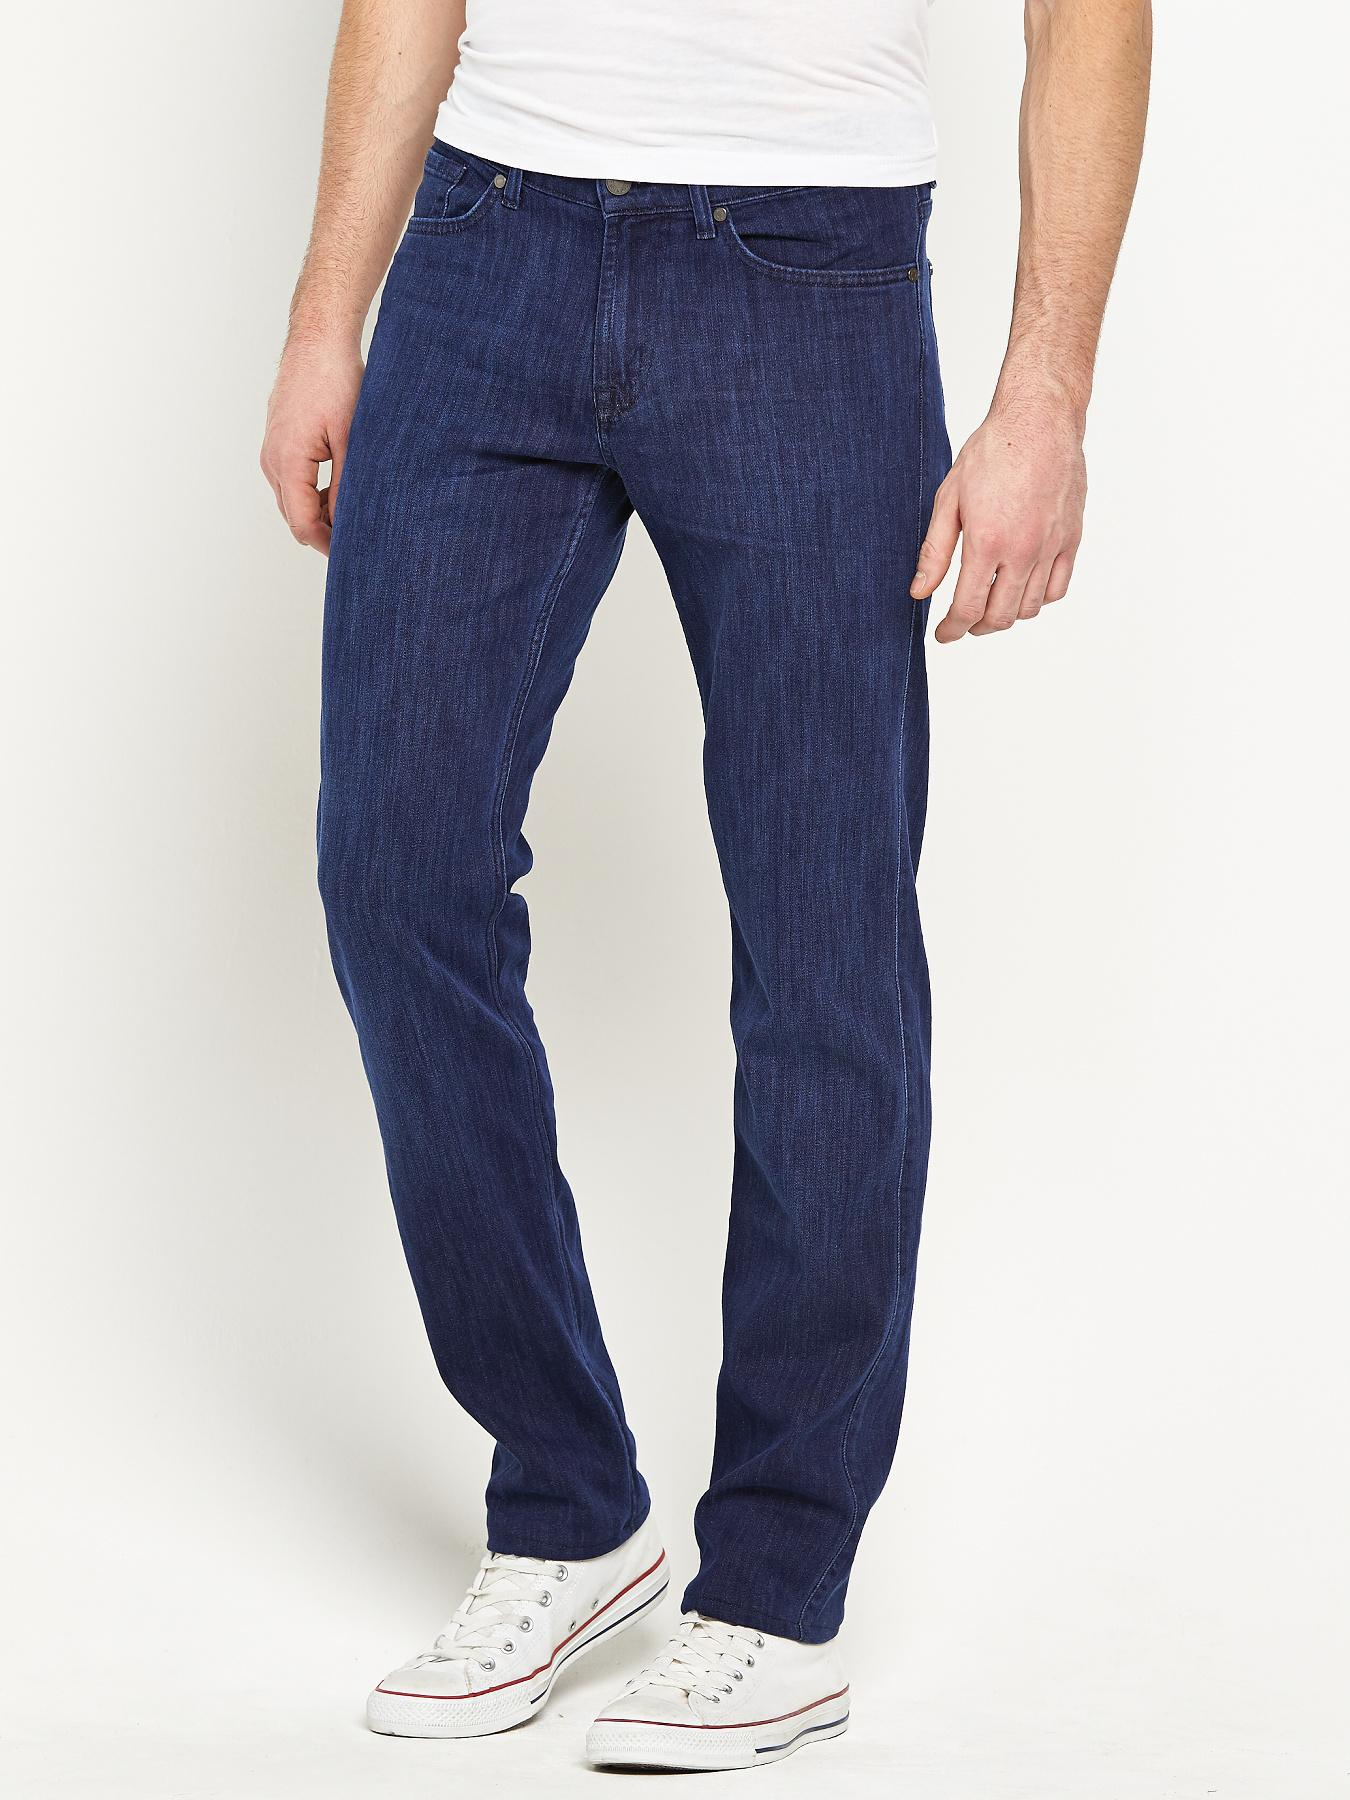 7 For All Mankind Mens Slimmy Jeans - Blue, Blue